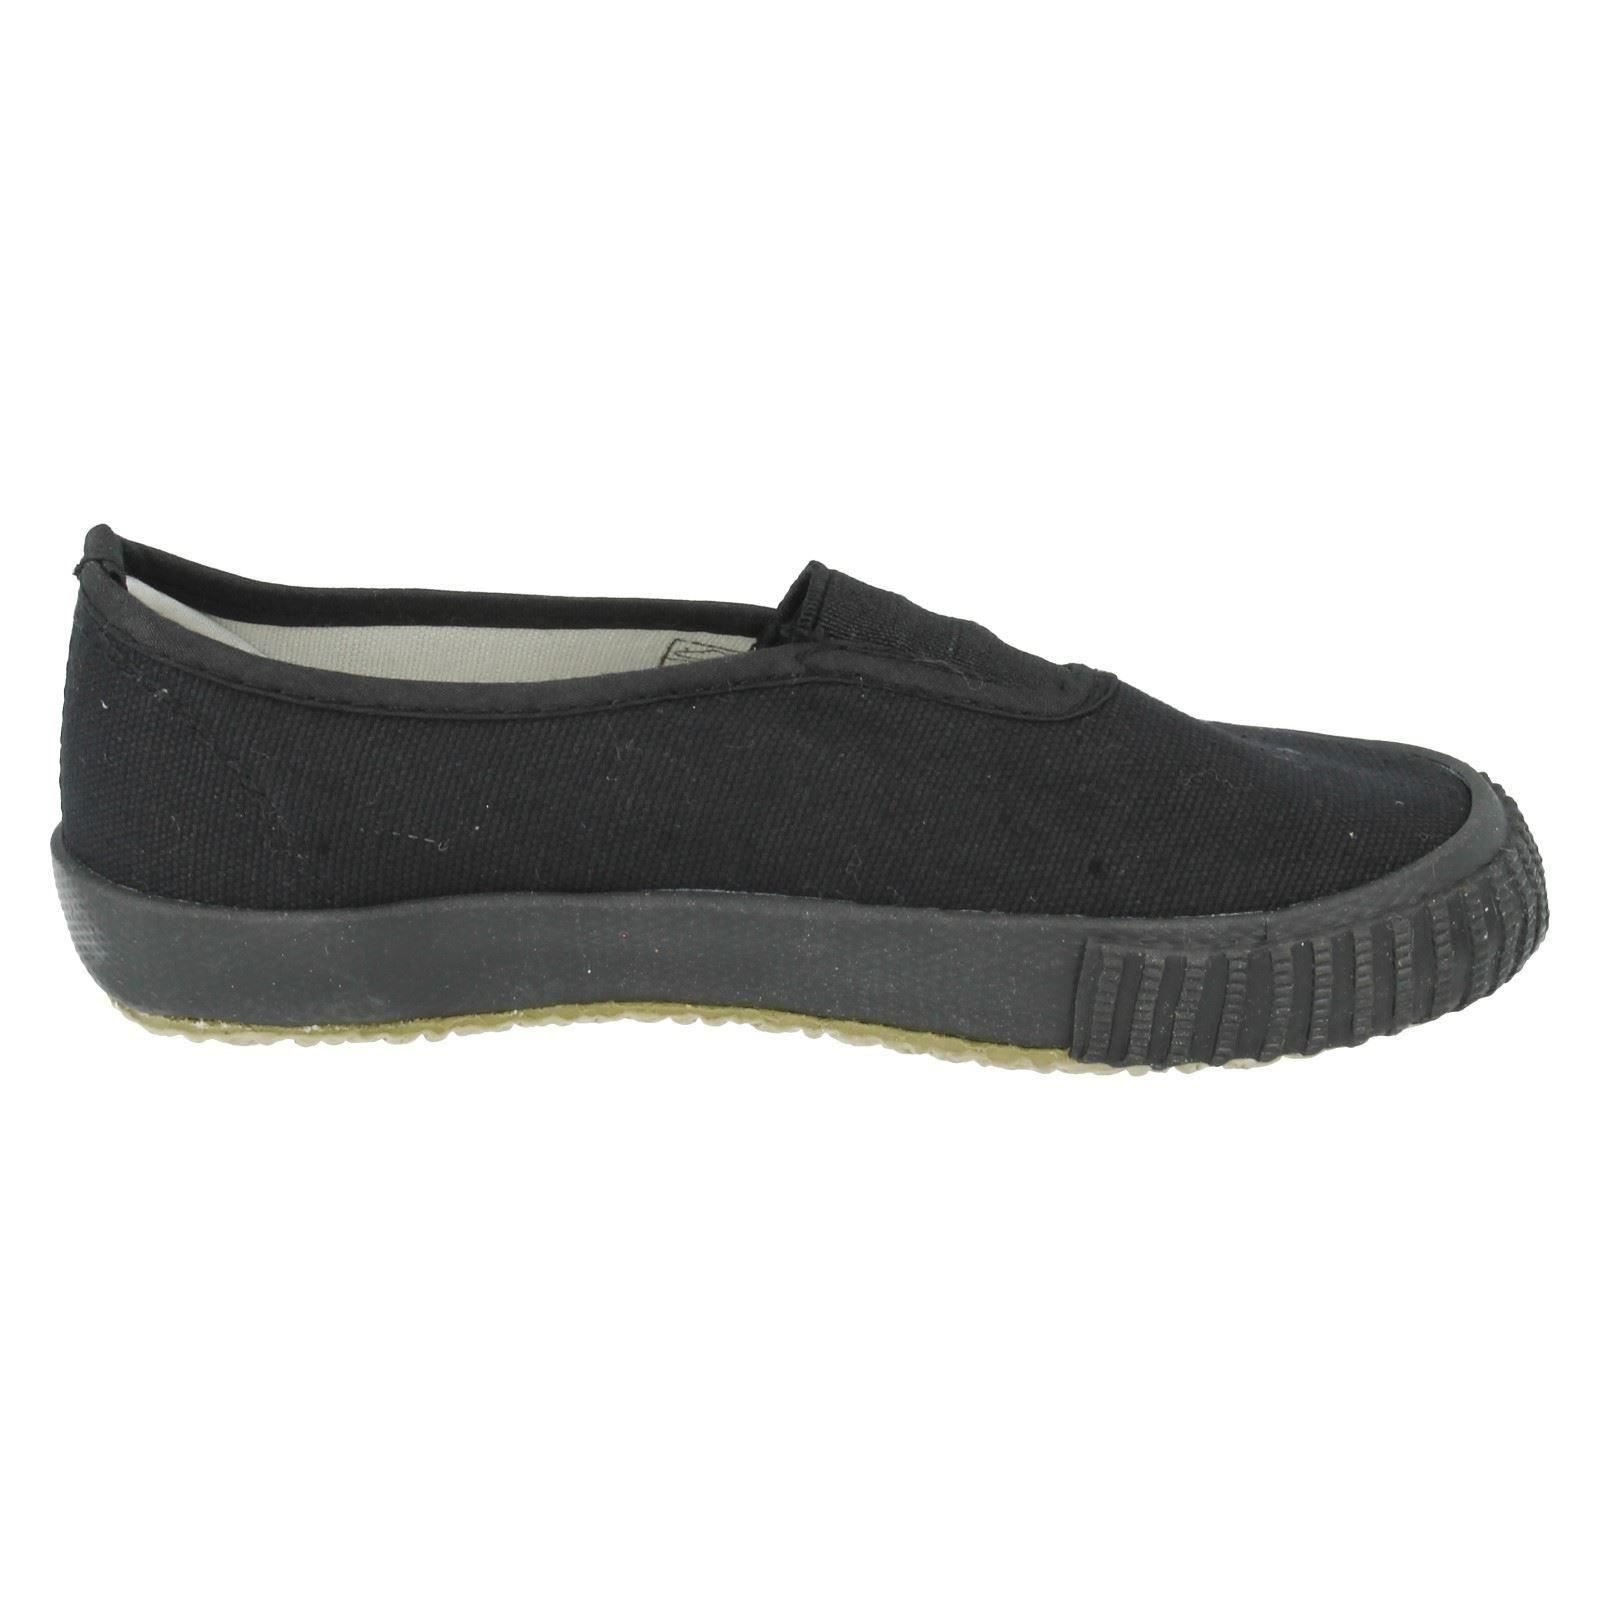 Children Plimsolls The Style - Gussetpl1